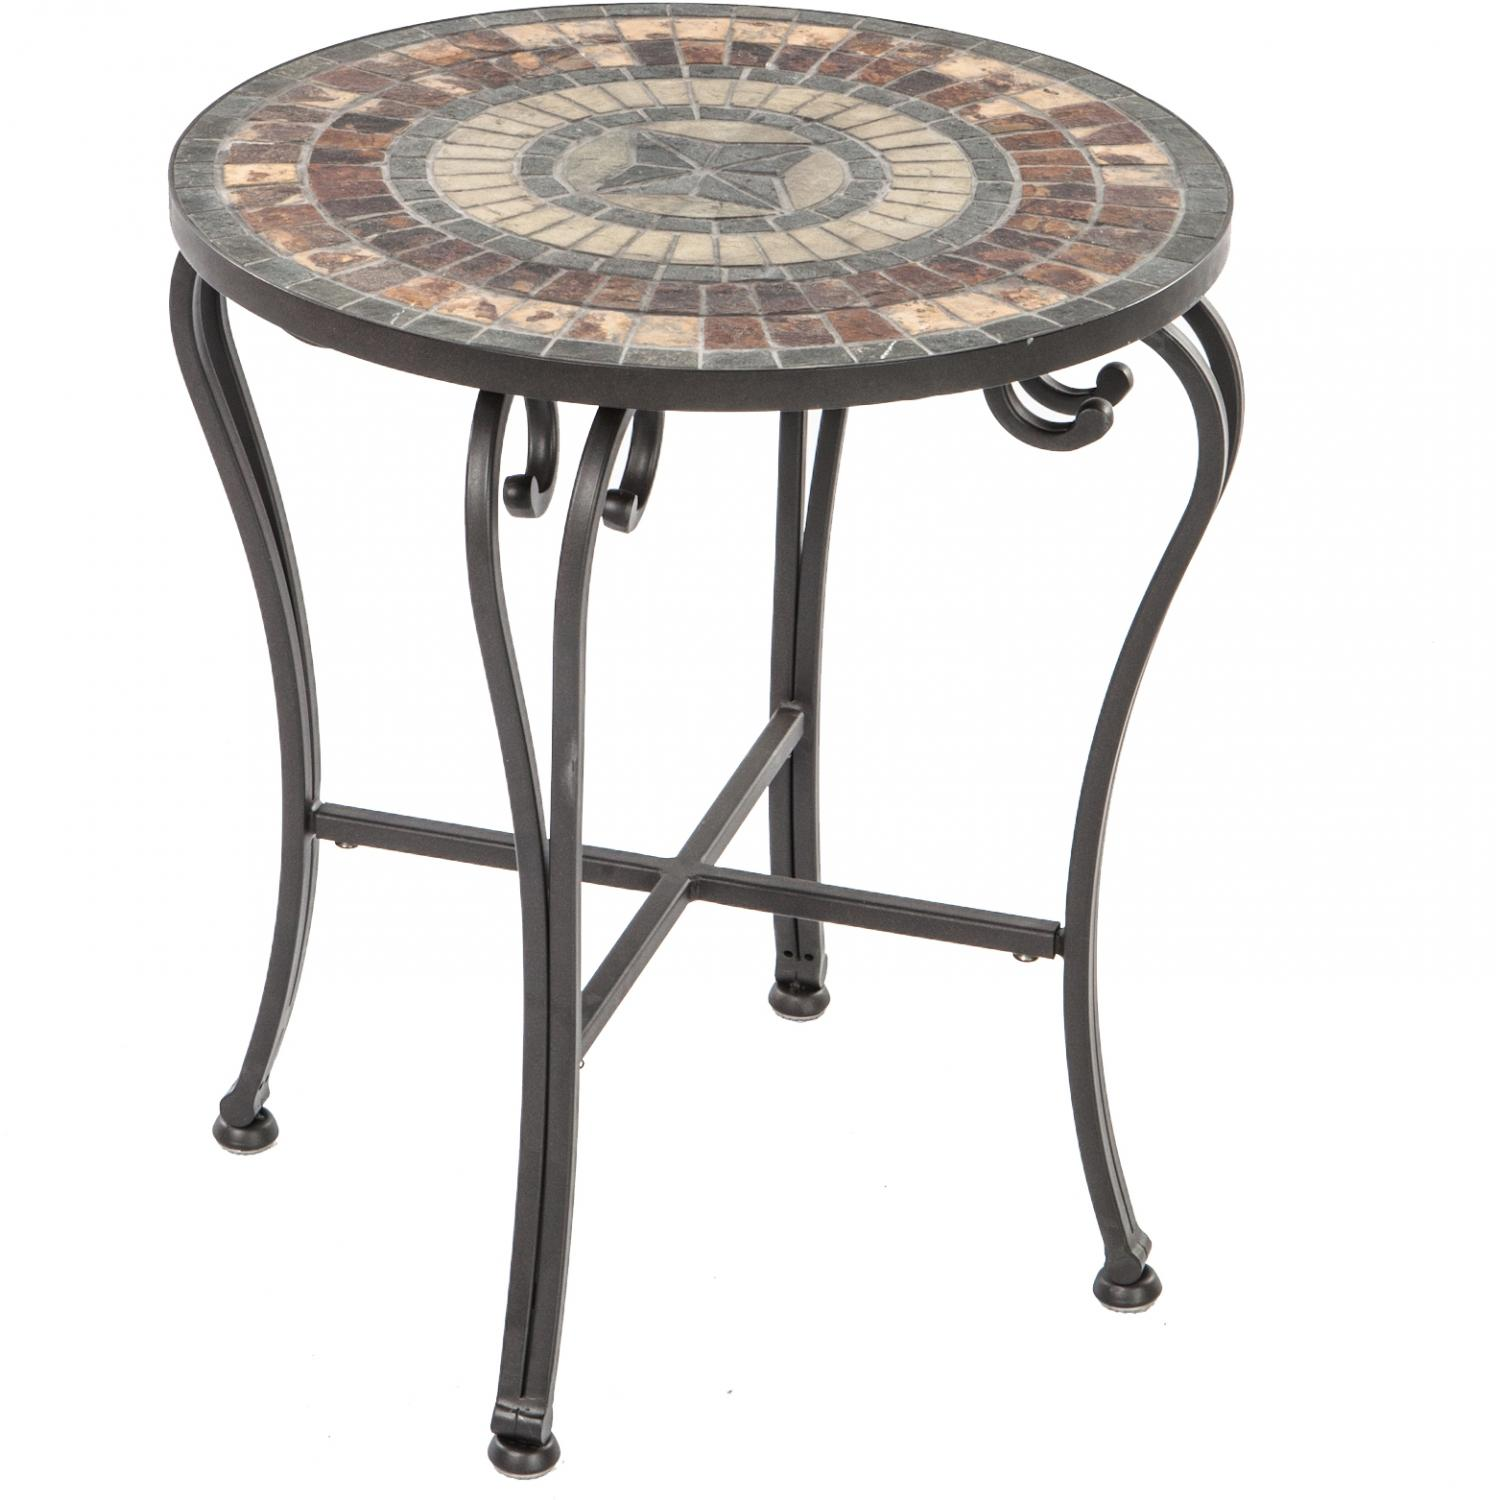 mosaic accent table outdoor design ideas kohls alfresco home asti side ultimate patio square night stand target vases diy granite countertops large silver lamps dining room